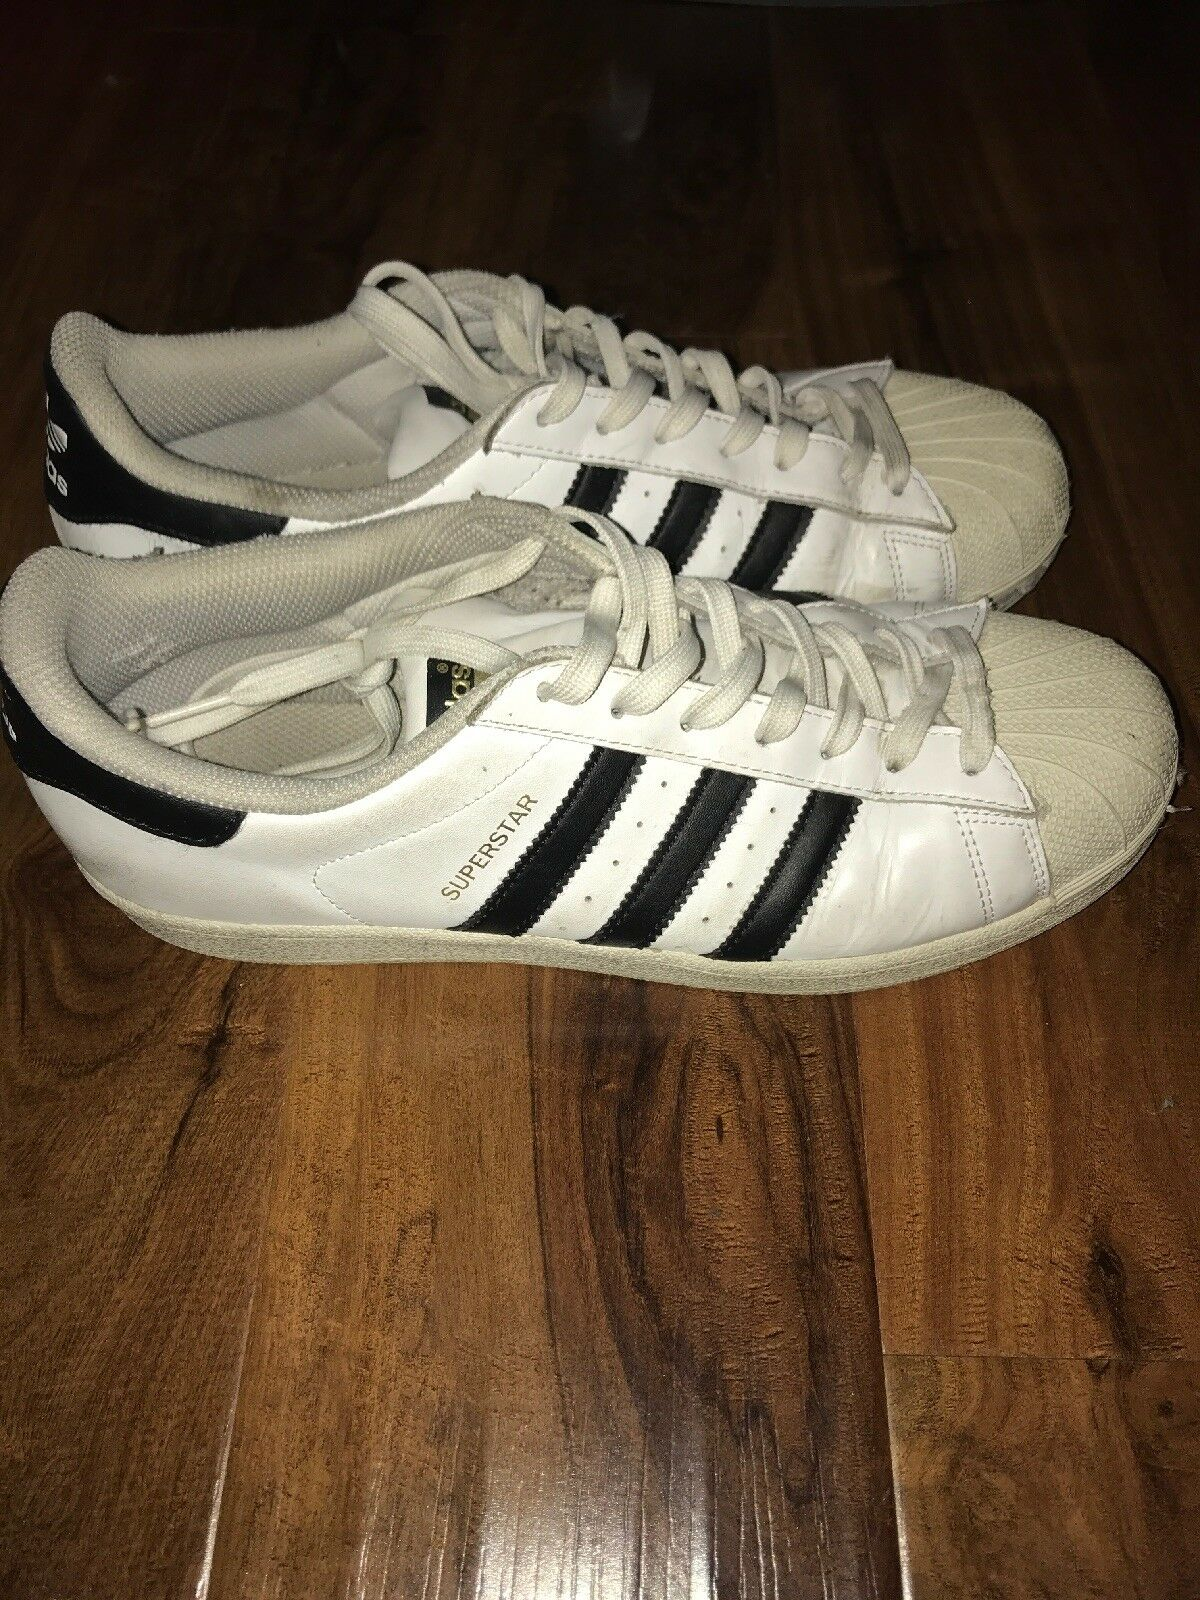 442a51e9f2b75 Size Superstar Men's Shoes Used 10 Adidas nfcknv3840-Athletic Shoes ...